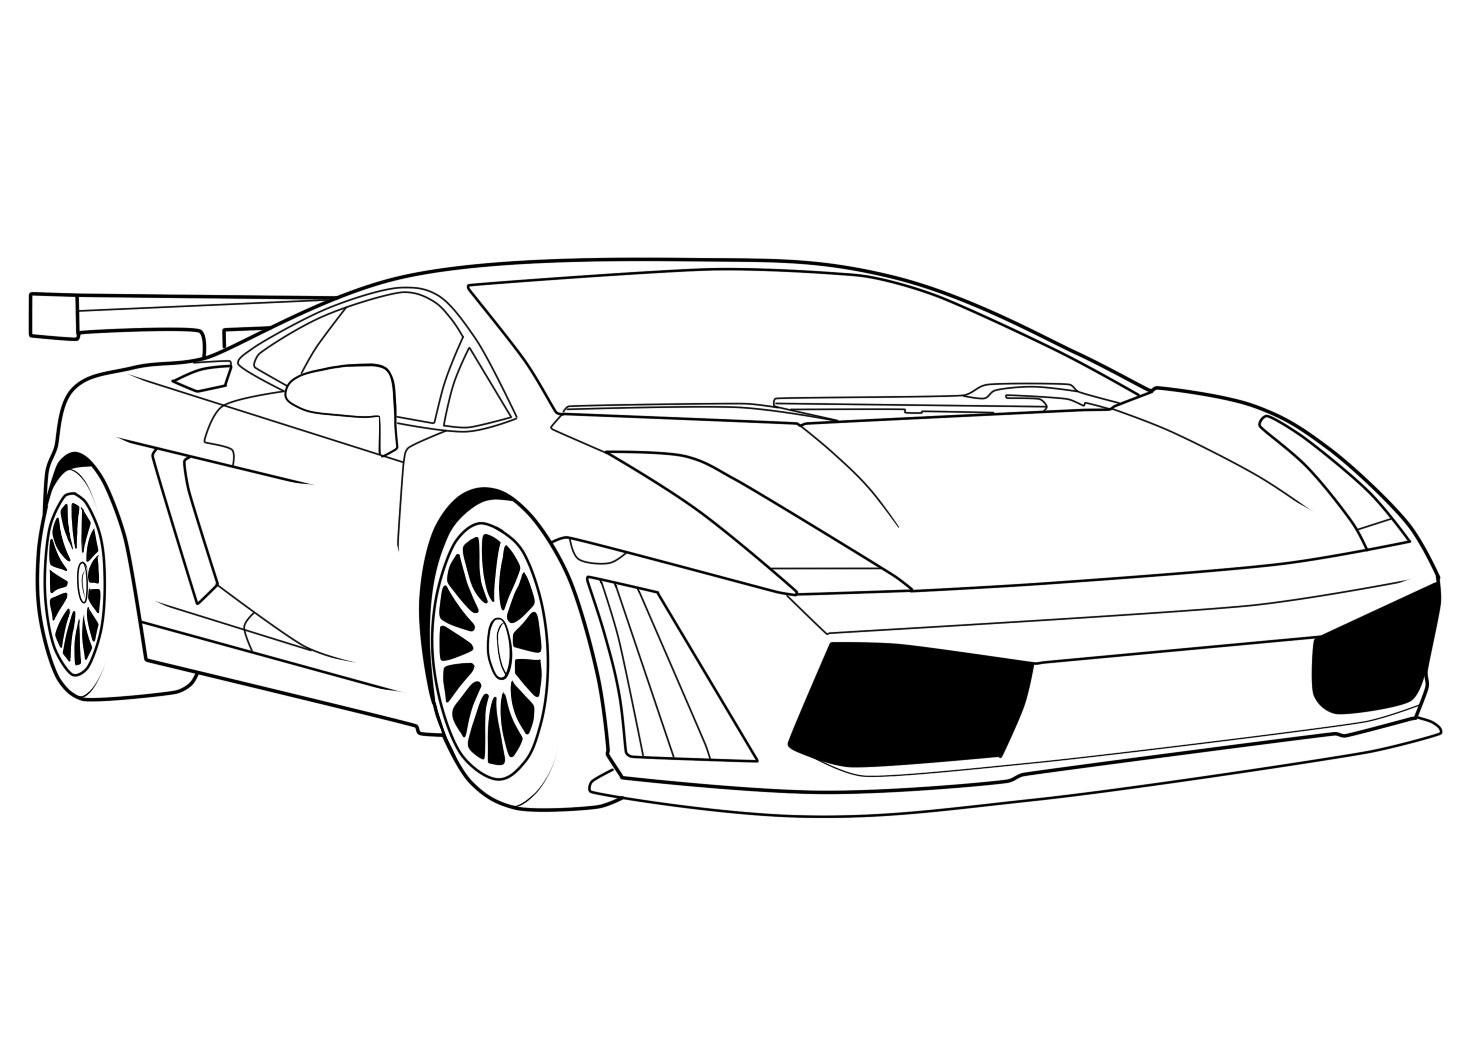 Free coloring pages for adults cars - Car Coloring Pages For Boys Print Free Coloring Pages For Kids Cars Pinterest Cars Printing And Free